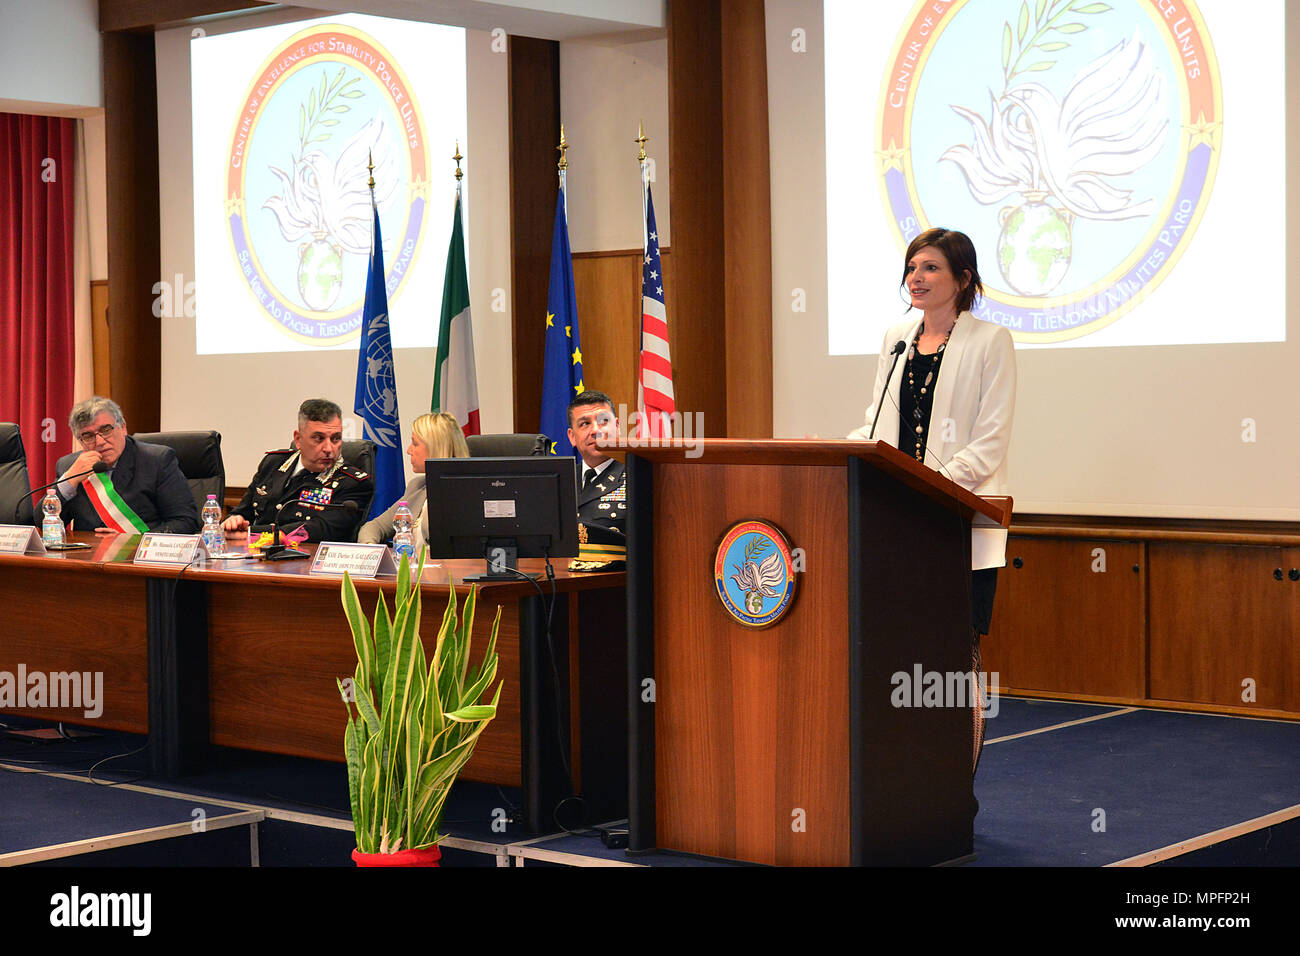 """Dr. Irene Fellin, Gender Consultant International Affairs Institute Roma, Italy, addresses attendees at the opening ceremony of the 5th """"Gender Protection in Peace Operations"""" Course at the  Center of Excellence for Stability Police Units (CoESPU) in Vicenza, Italy, Mar. 8, 2017. The event brought together military and civic leaders of the local community and offered the opportunity to celebrate International Women's Day. (U.S. Army Photo by Visual Information Specialist Paolo Bovo/released) - Stock Image"""